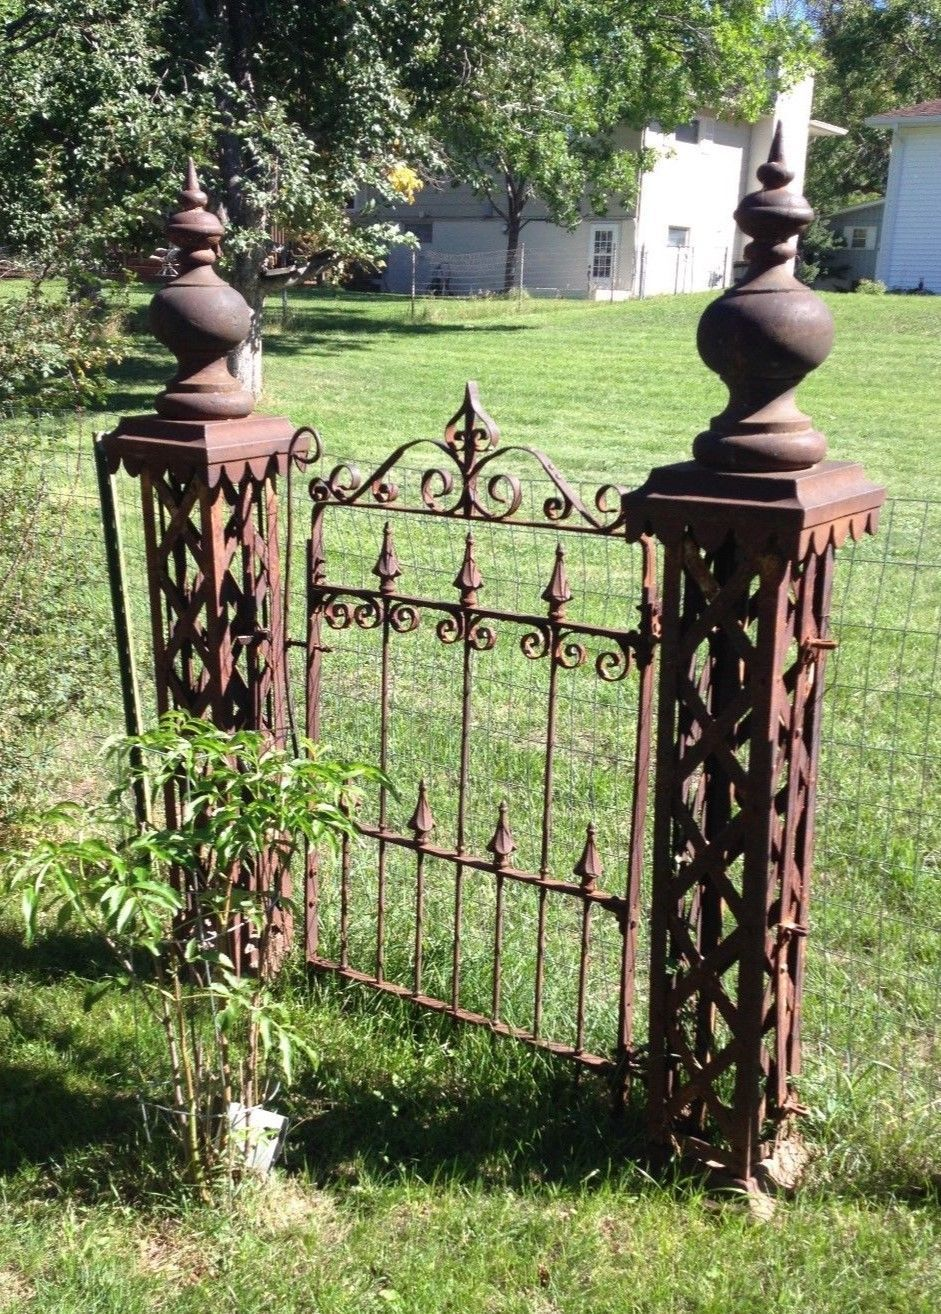 Antique Wrought Iron Fence 5 Posts And Gate Ornate Architectural